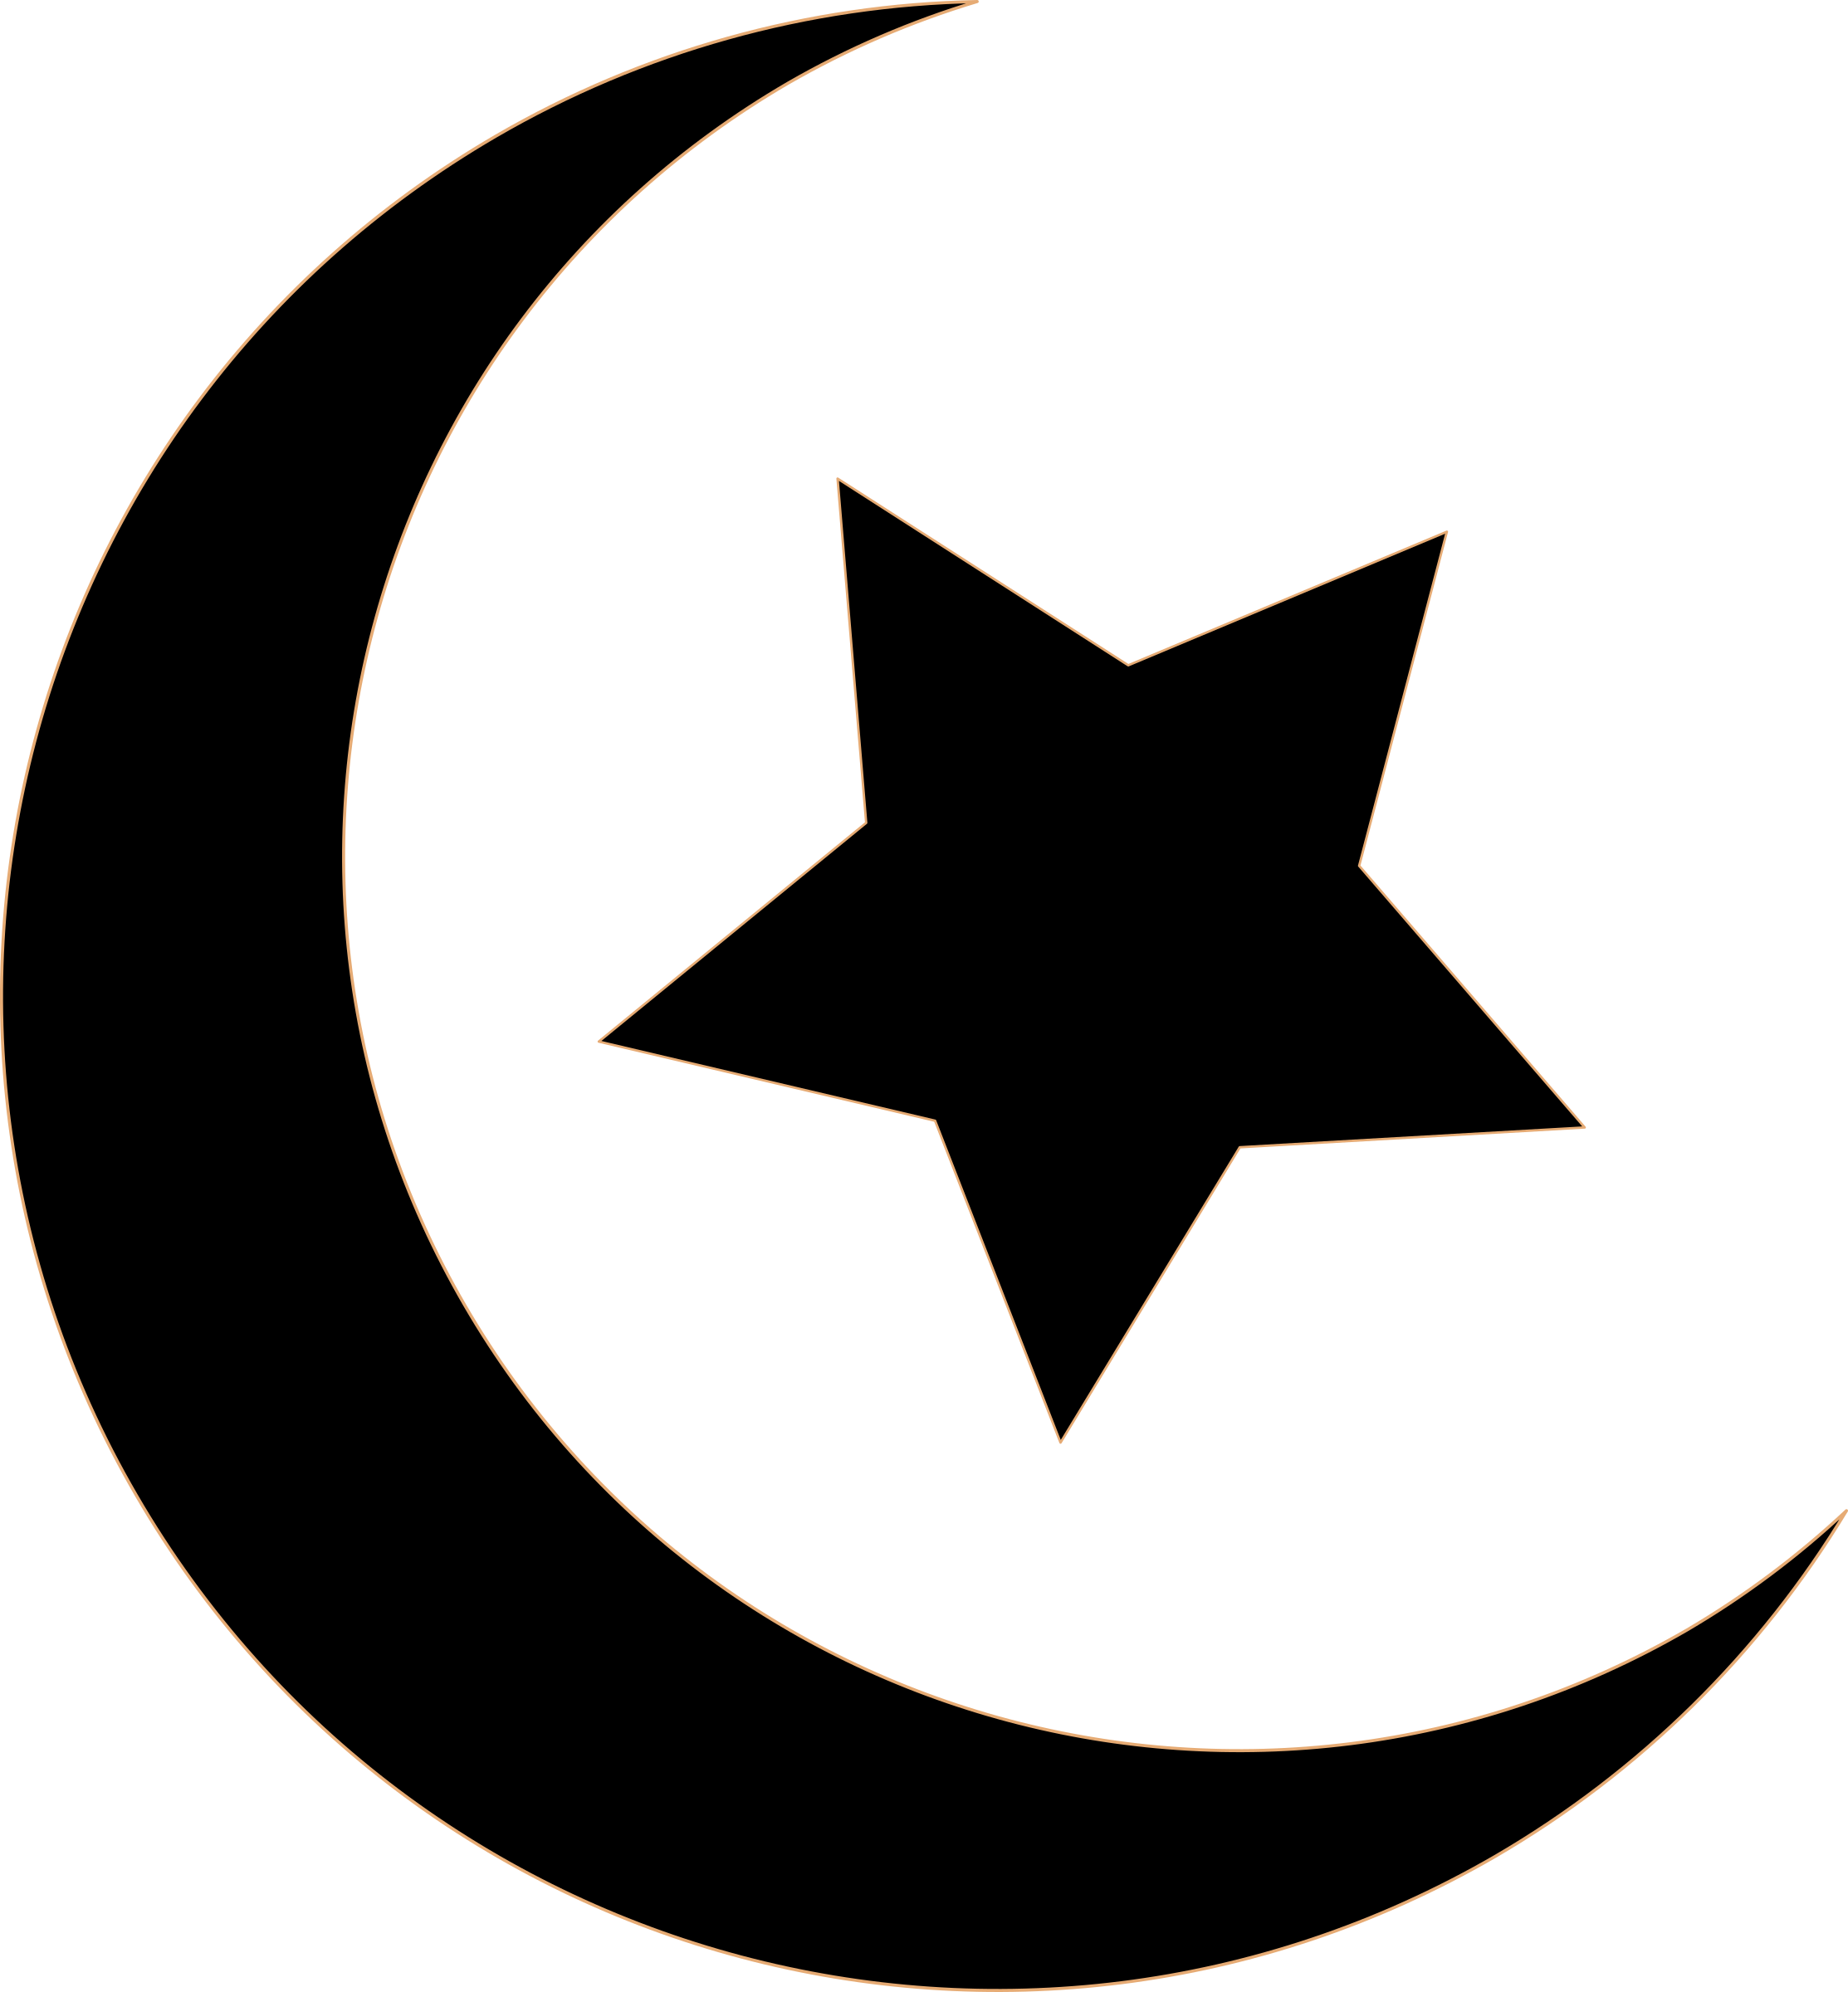 Star circle clipart black and white png Clipart - Black Crescent and Star png